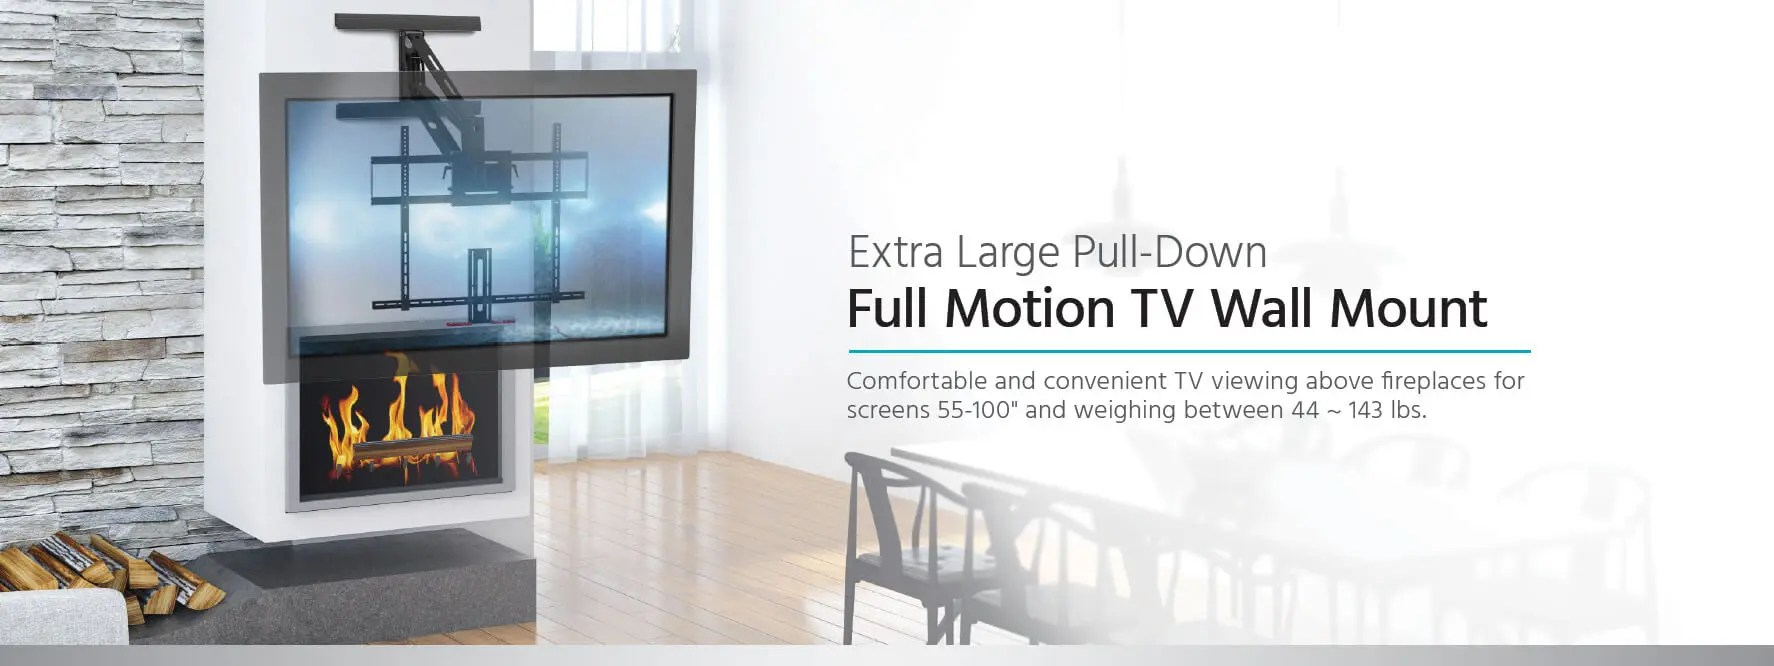 Fireplace Tv Mount Monoprice Above Fireplace Pull Down Full Motion Articulating Tv